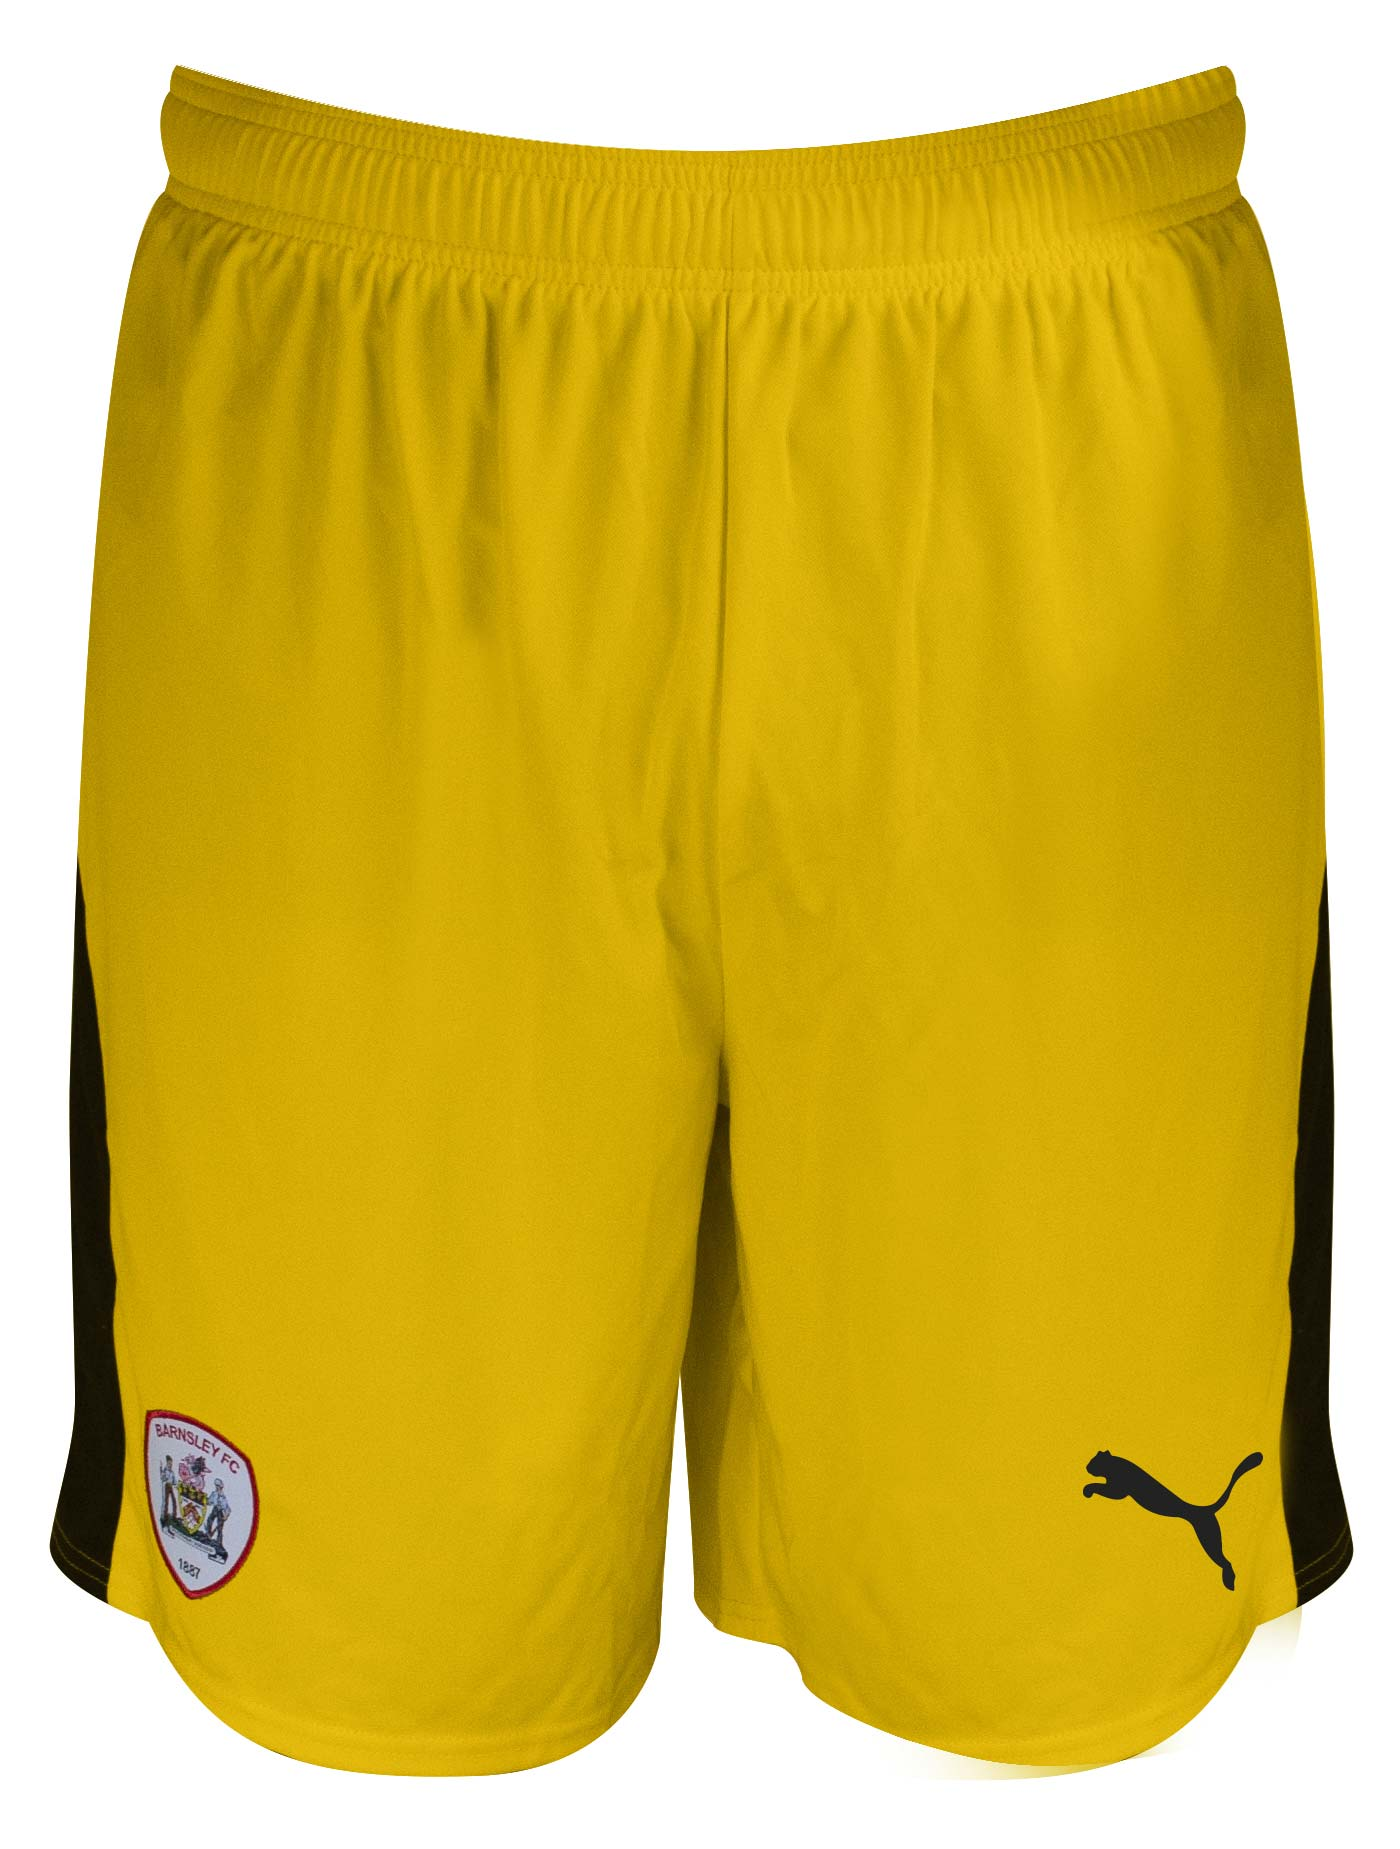 Puma Adult 3rd Goalkeeper Short 18